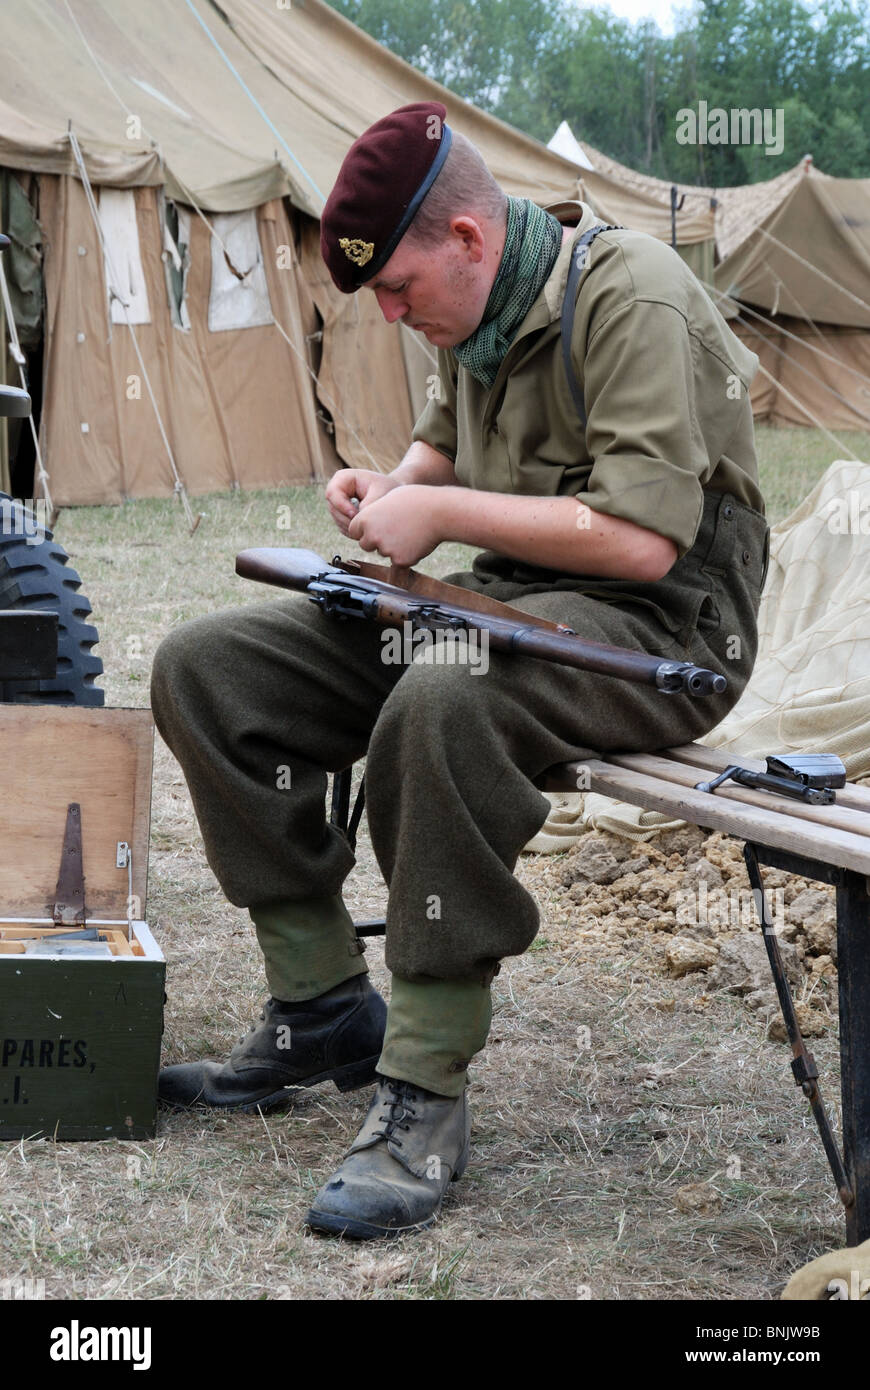 A re-enactor depicts a World War 2 British soldier cleaning his Lee Enfield rifle - Stock Image